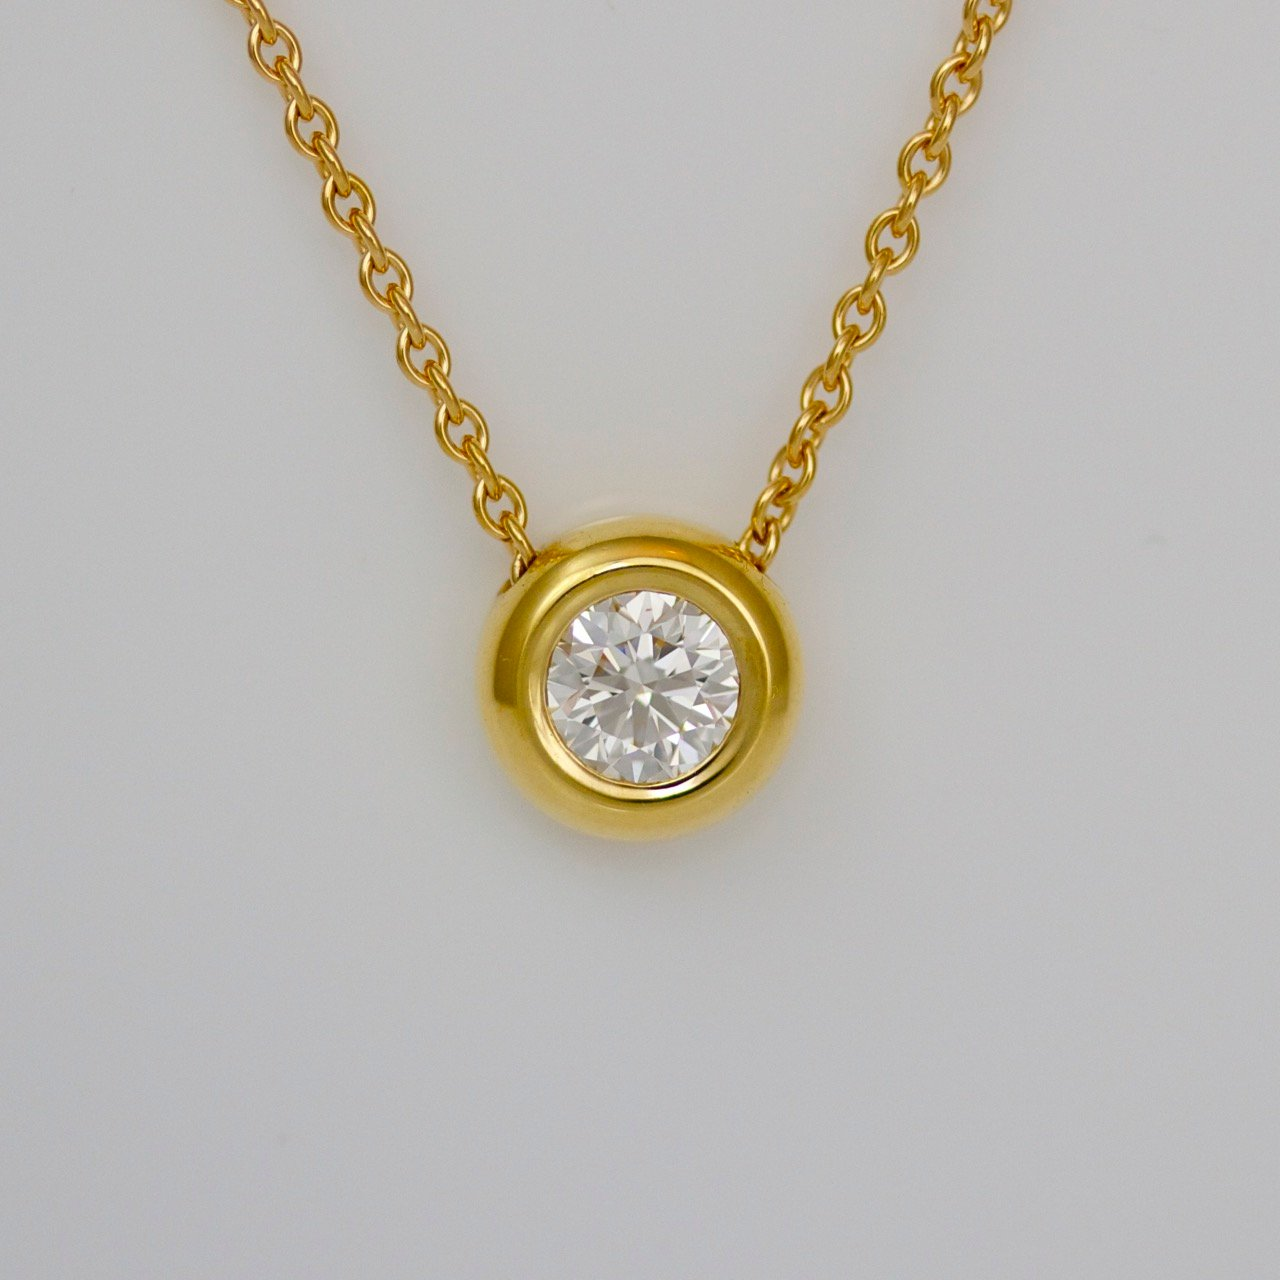 Diamond Necklace For Everyday Wear